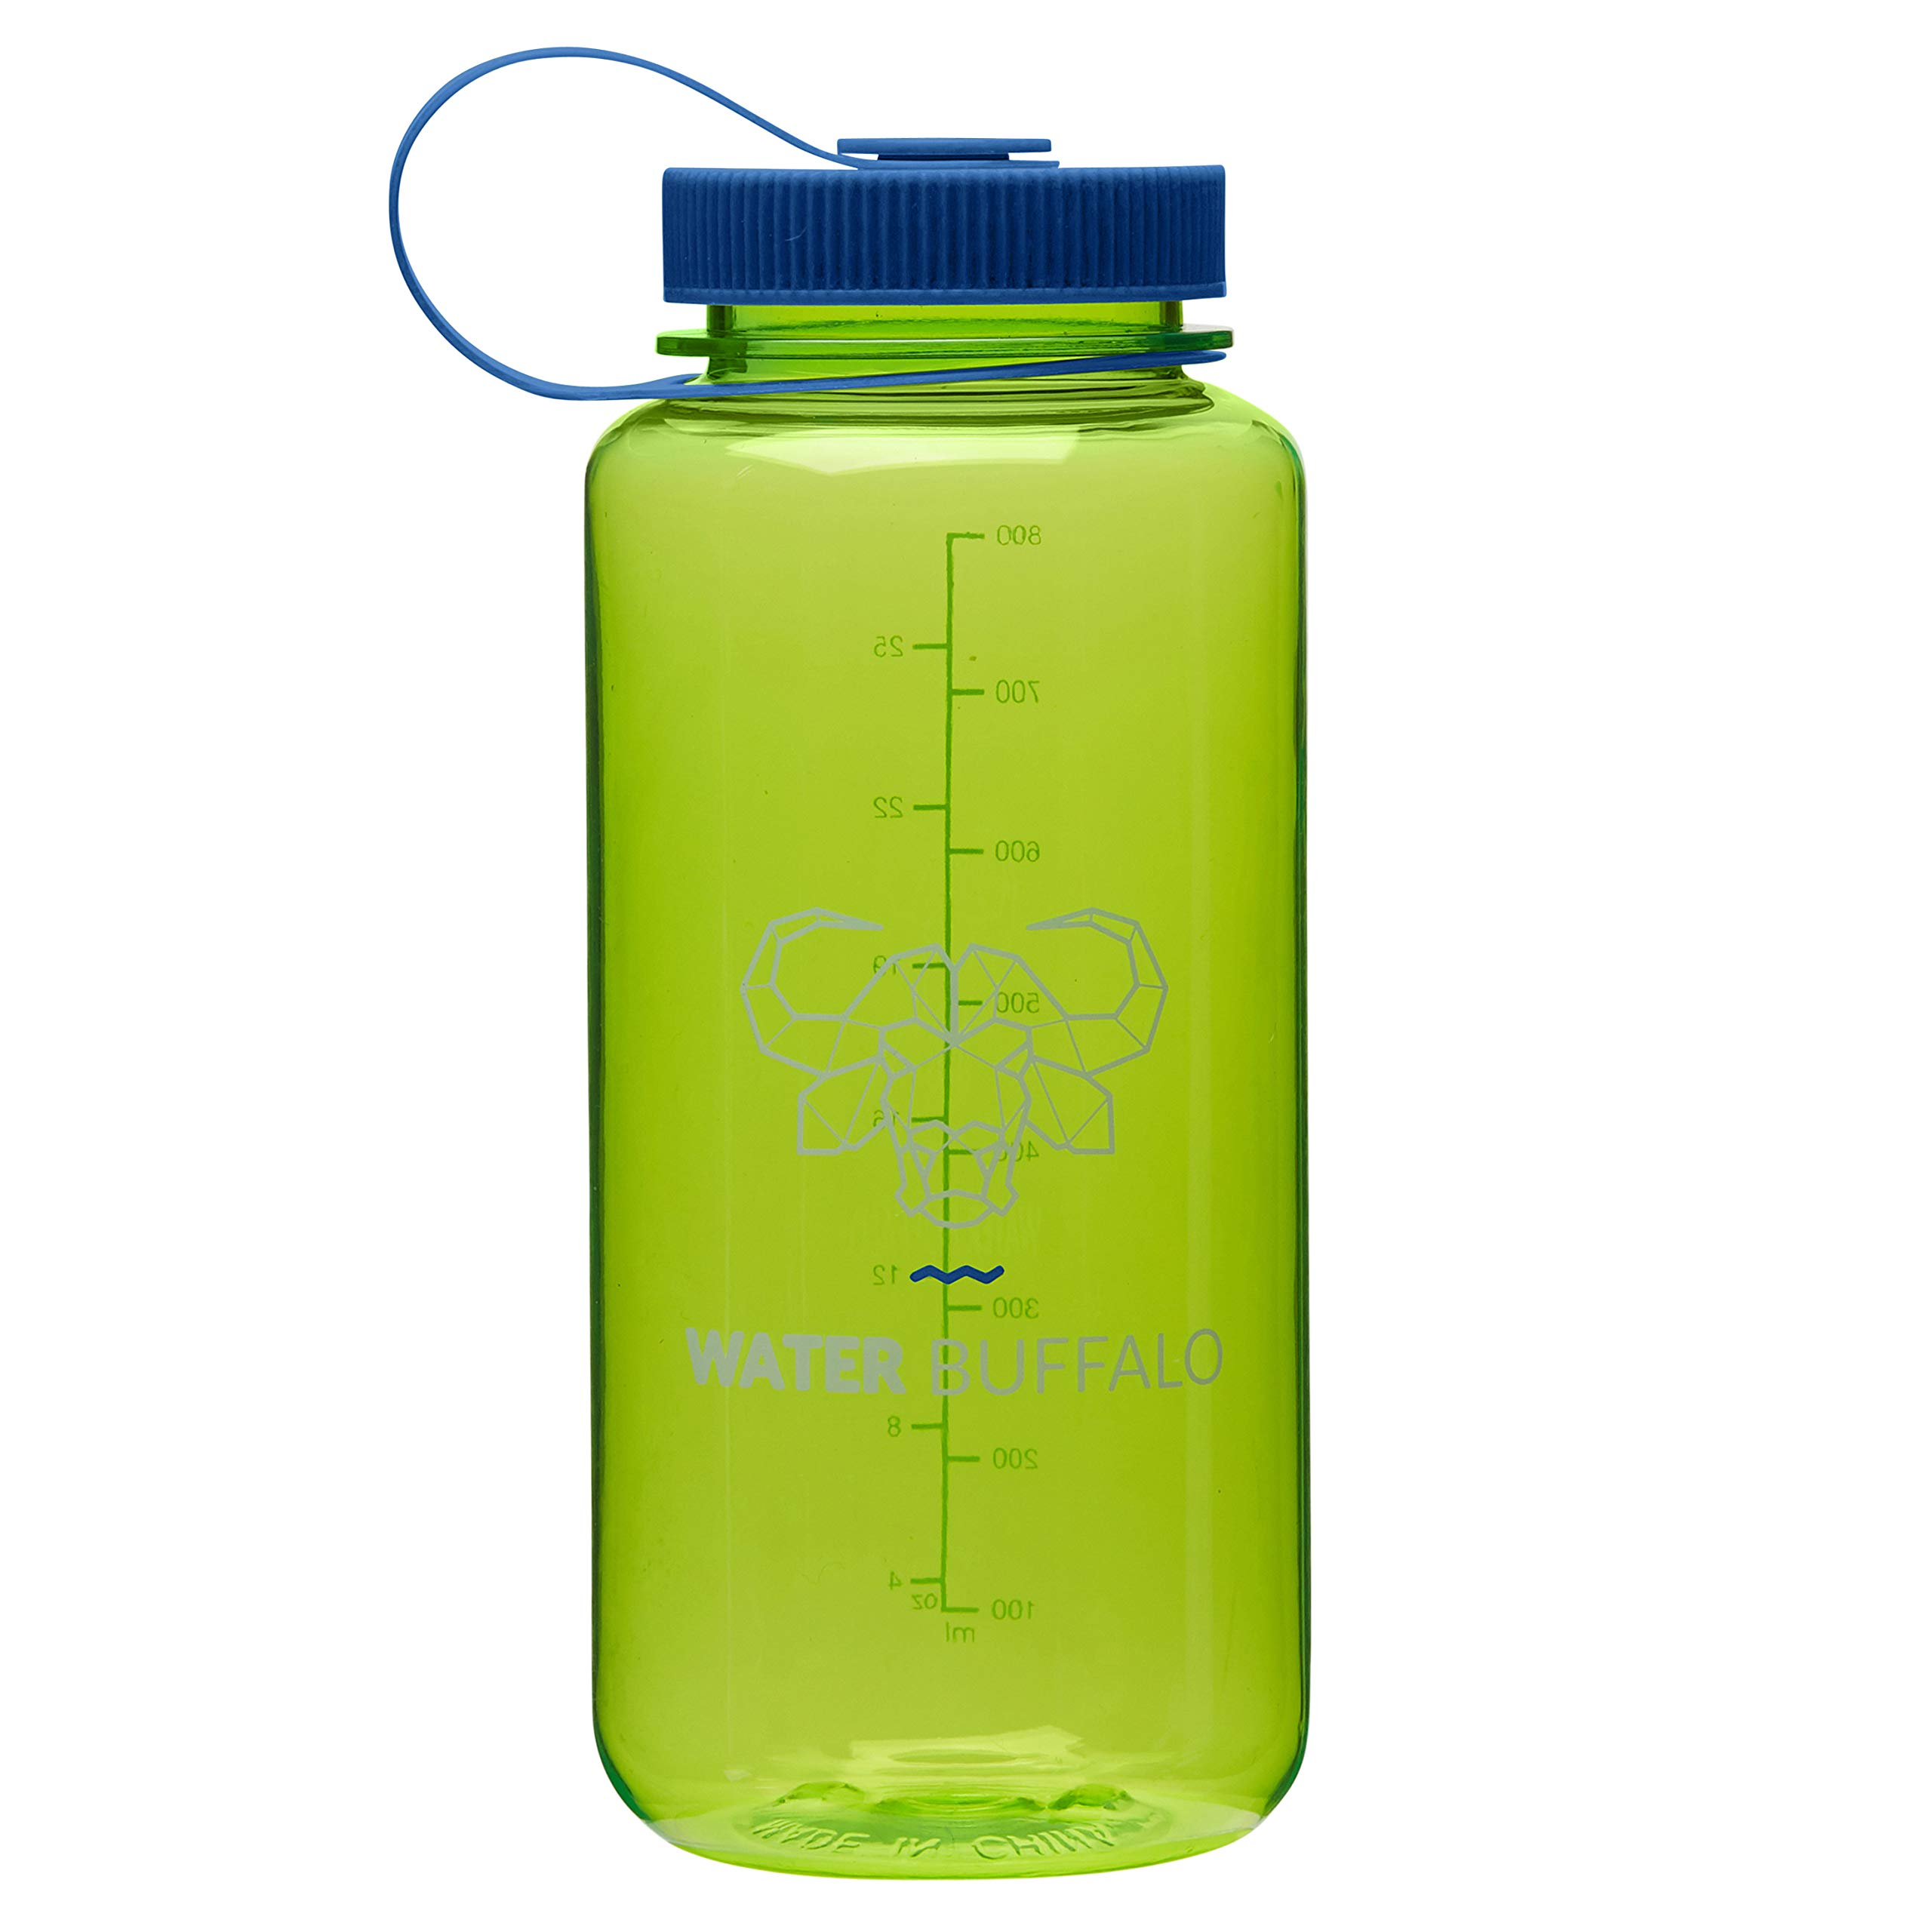 Water Buffalo Eco Friendly Water Bottle – Widemouth Tritan BPA Free Water Bottle 32 Ounce - Small Water Bottle with Measurements for Every Day Use, and Non-Toxic Hydration (Lime-Green/Blue)